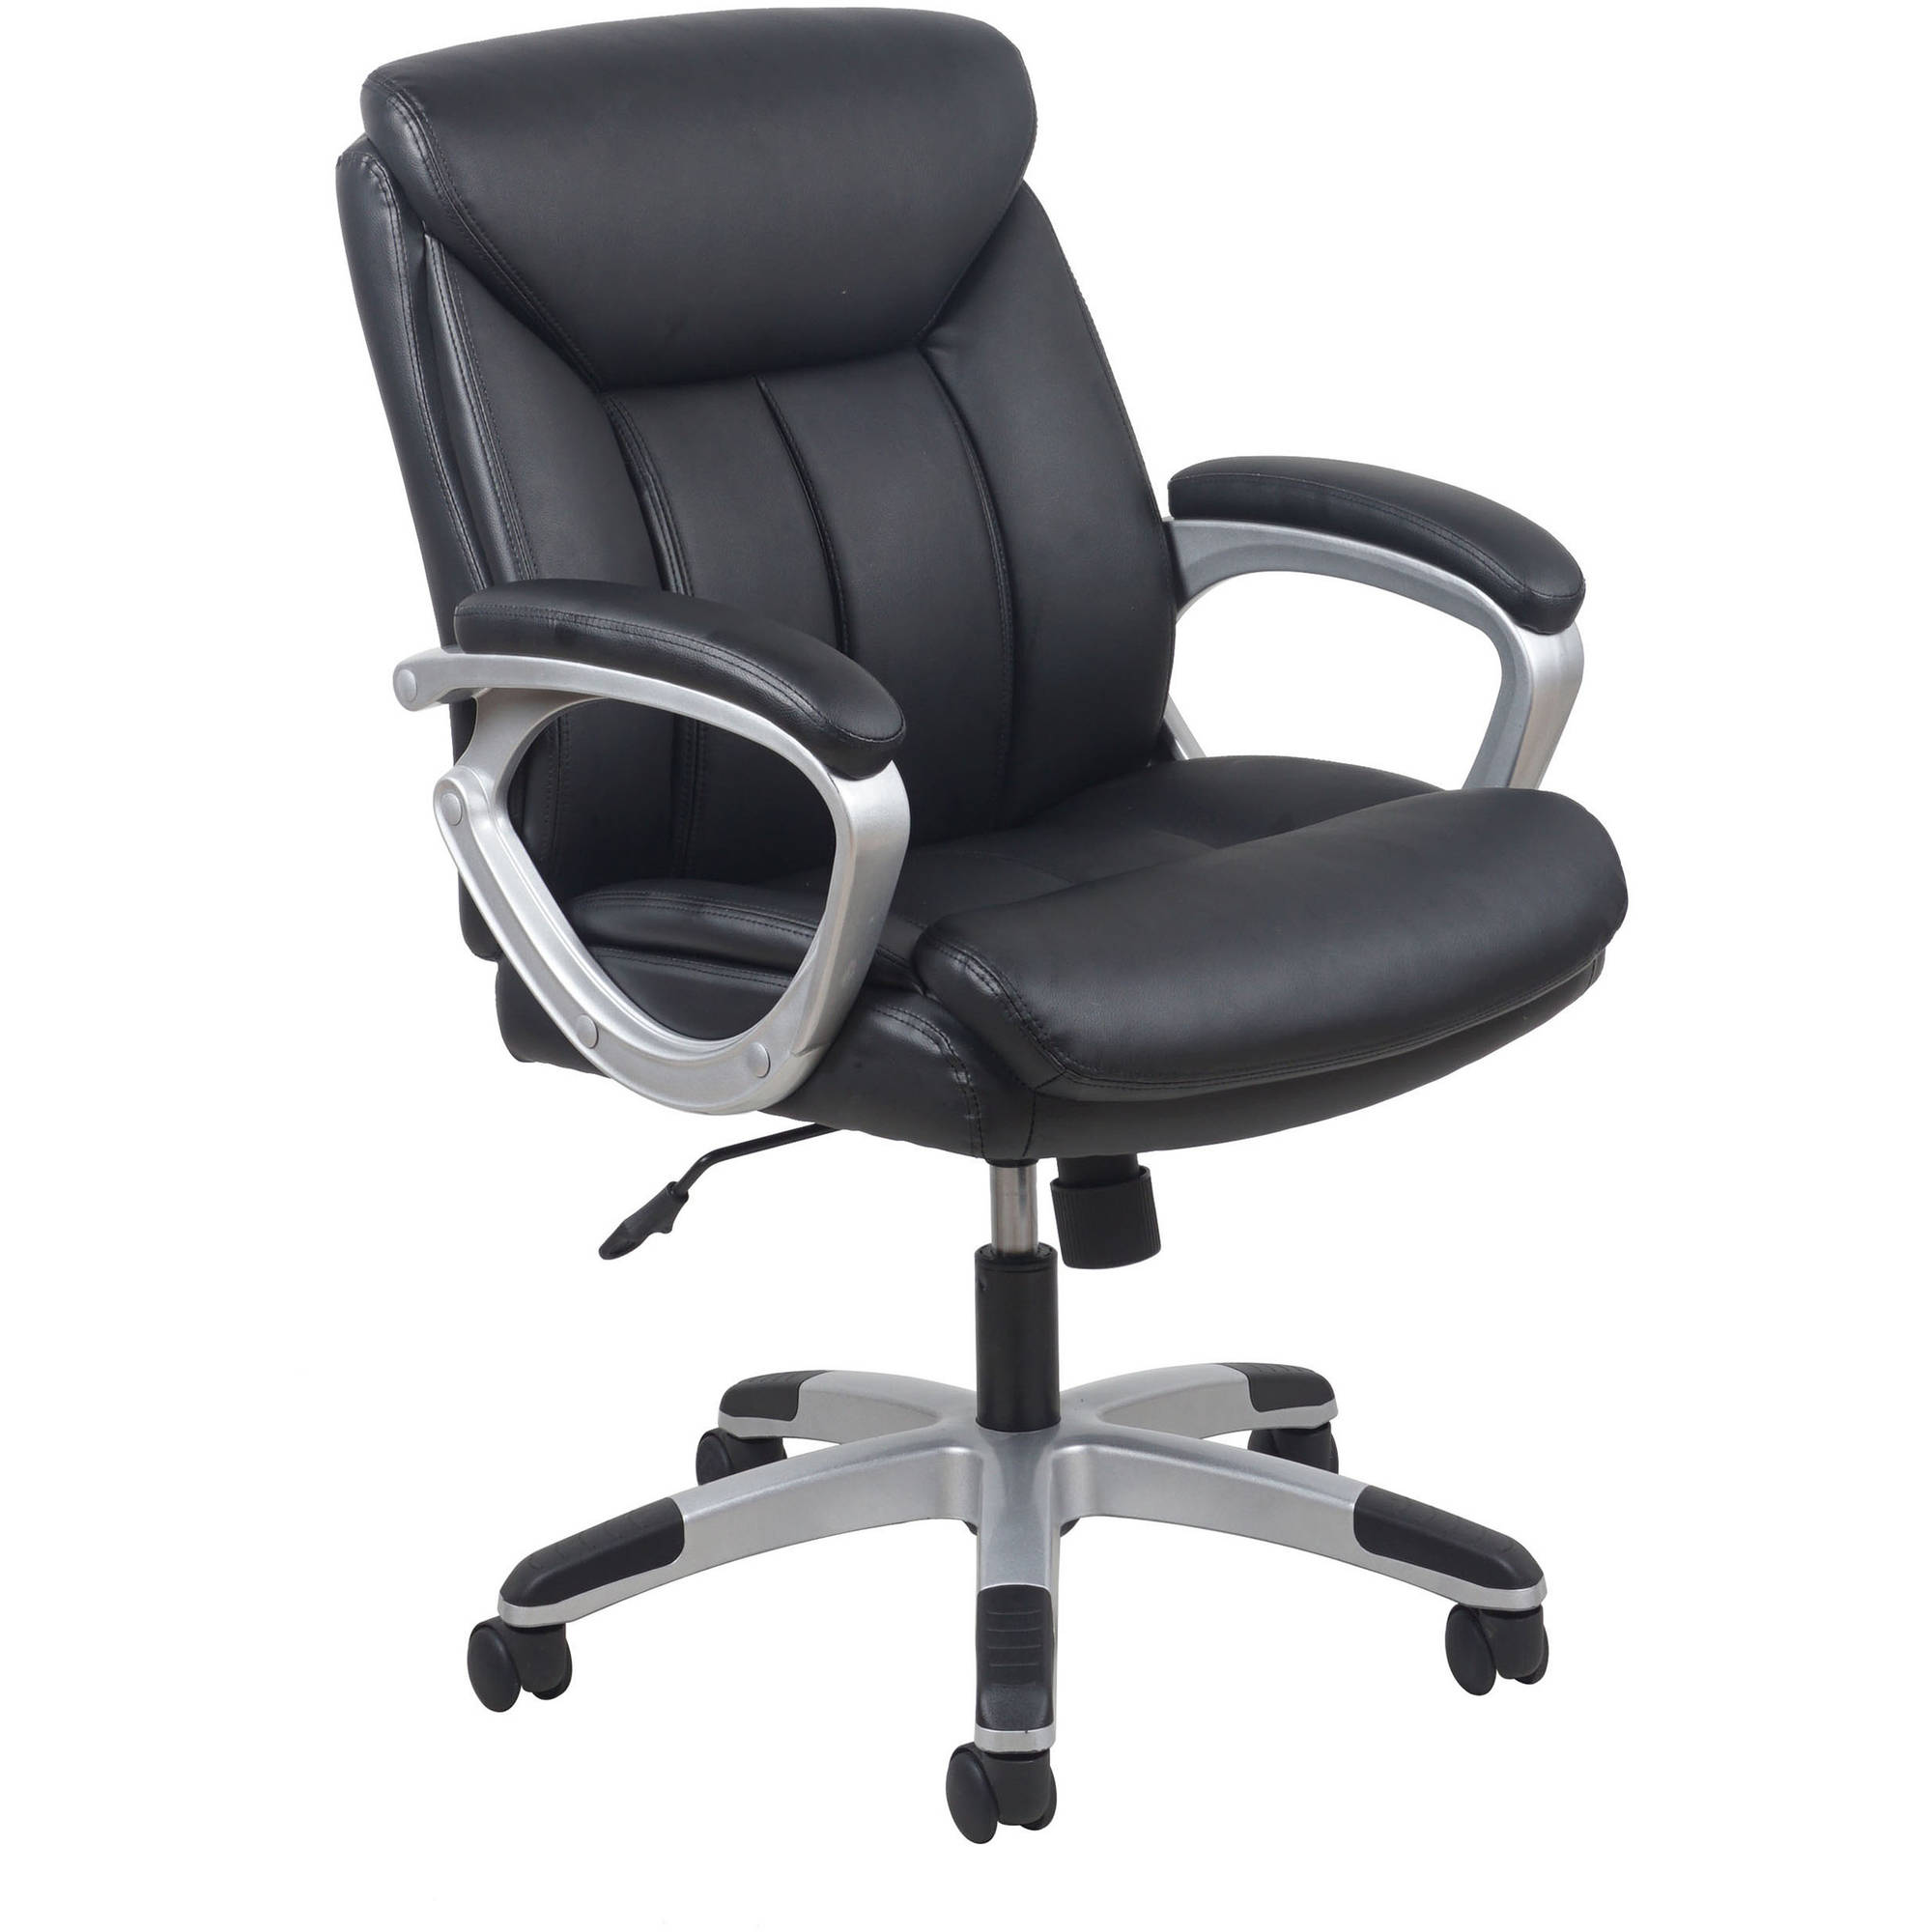 office chairs at walmart. essentials by ofm leather executive office chair with arms blacksilver chairs at walmart